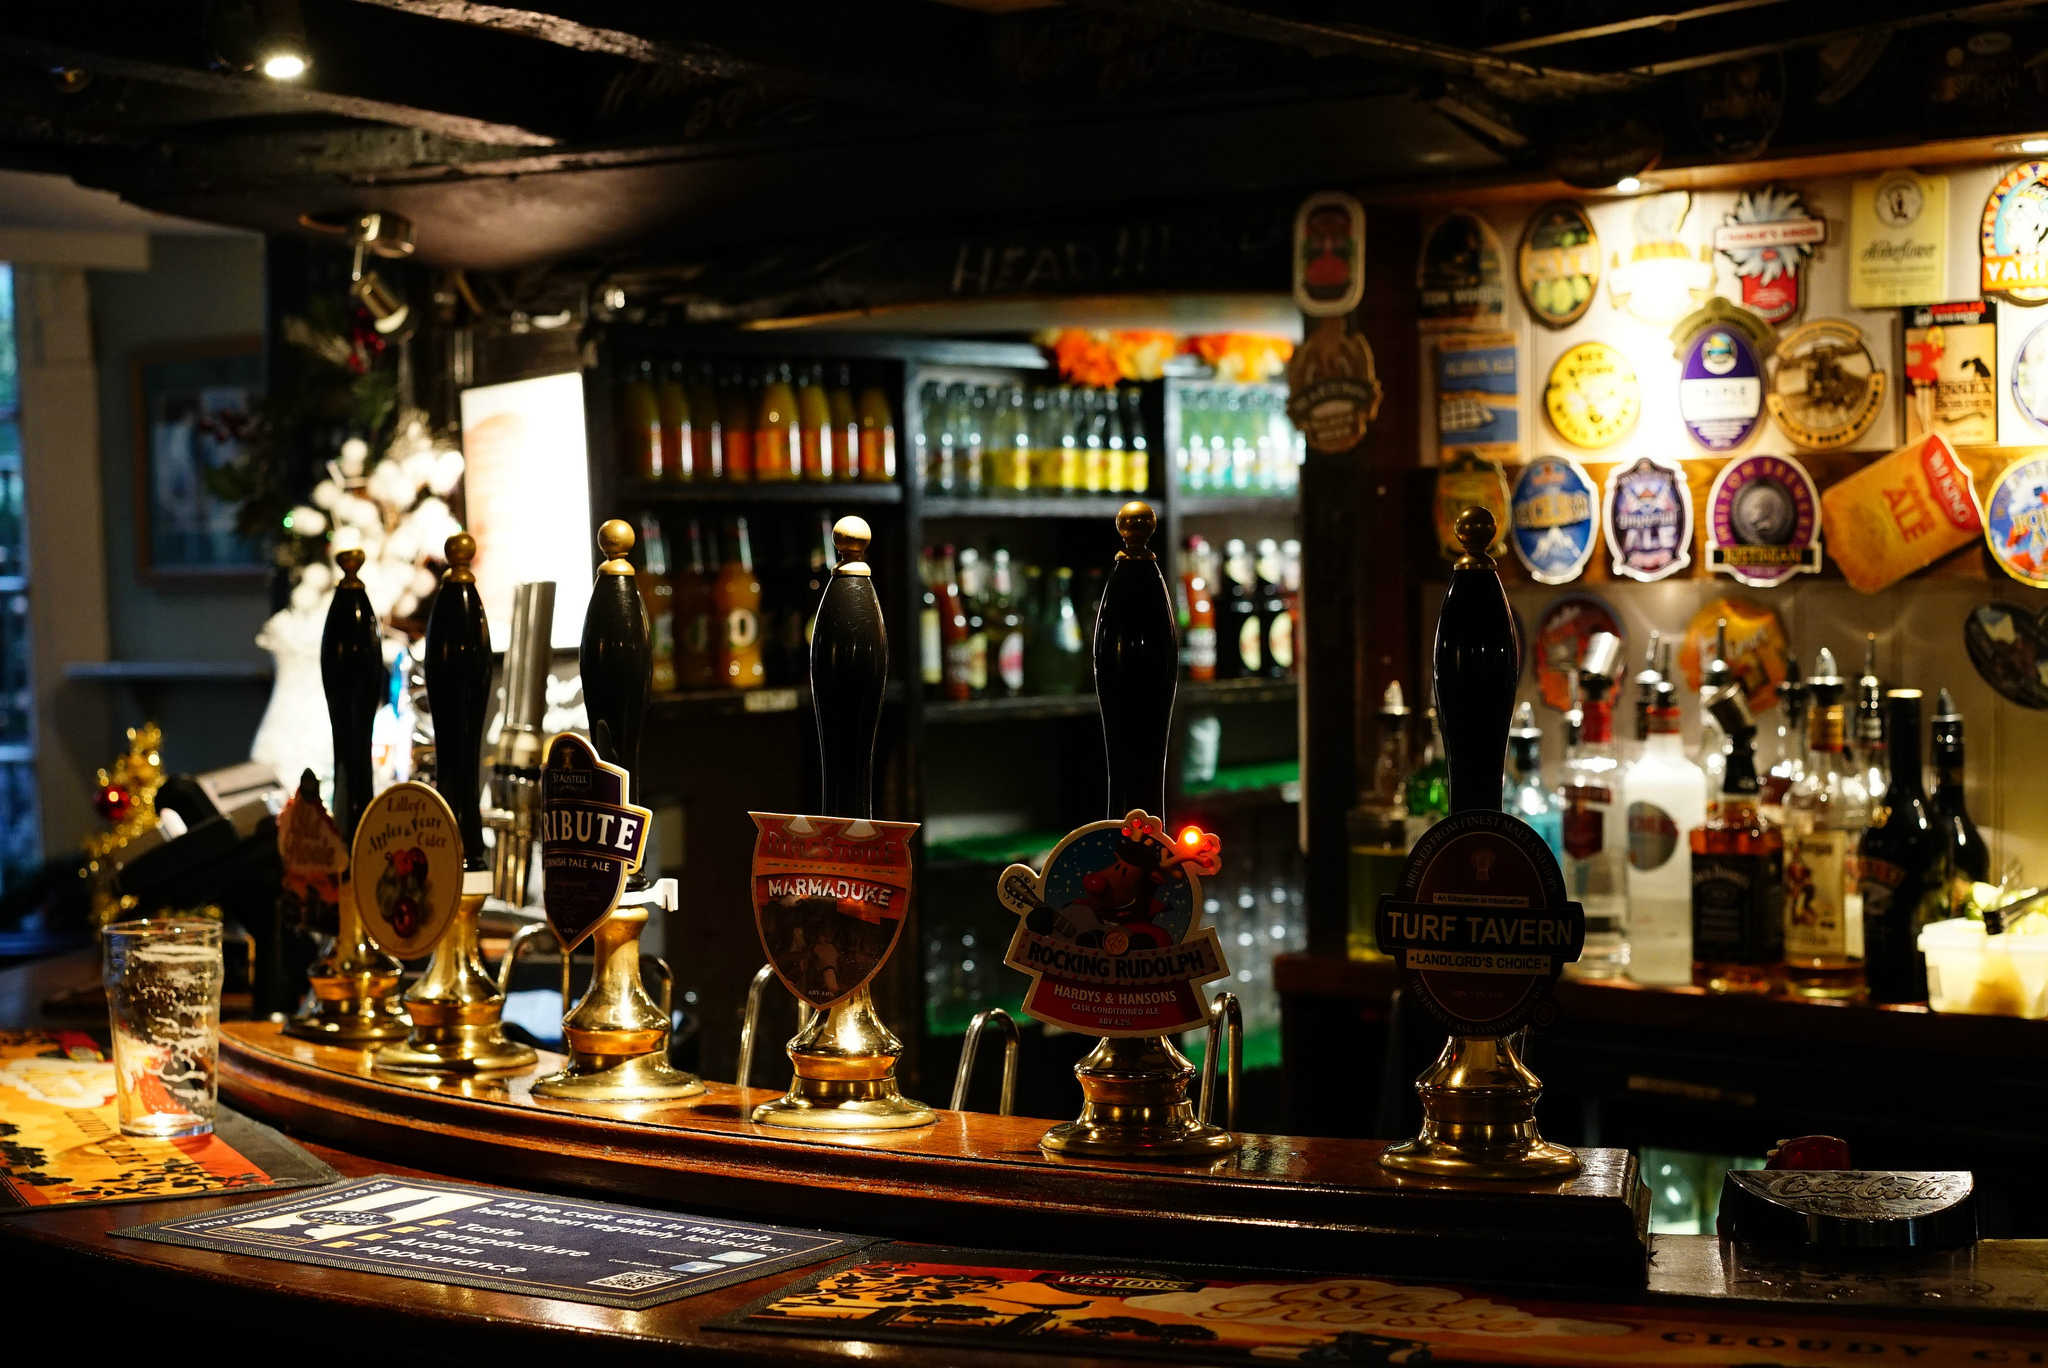 The Turf Tavern: Oxford's best pub?